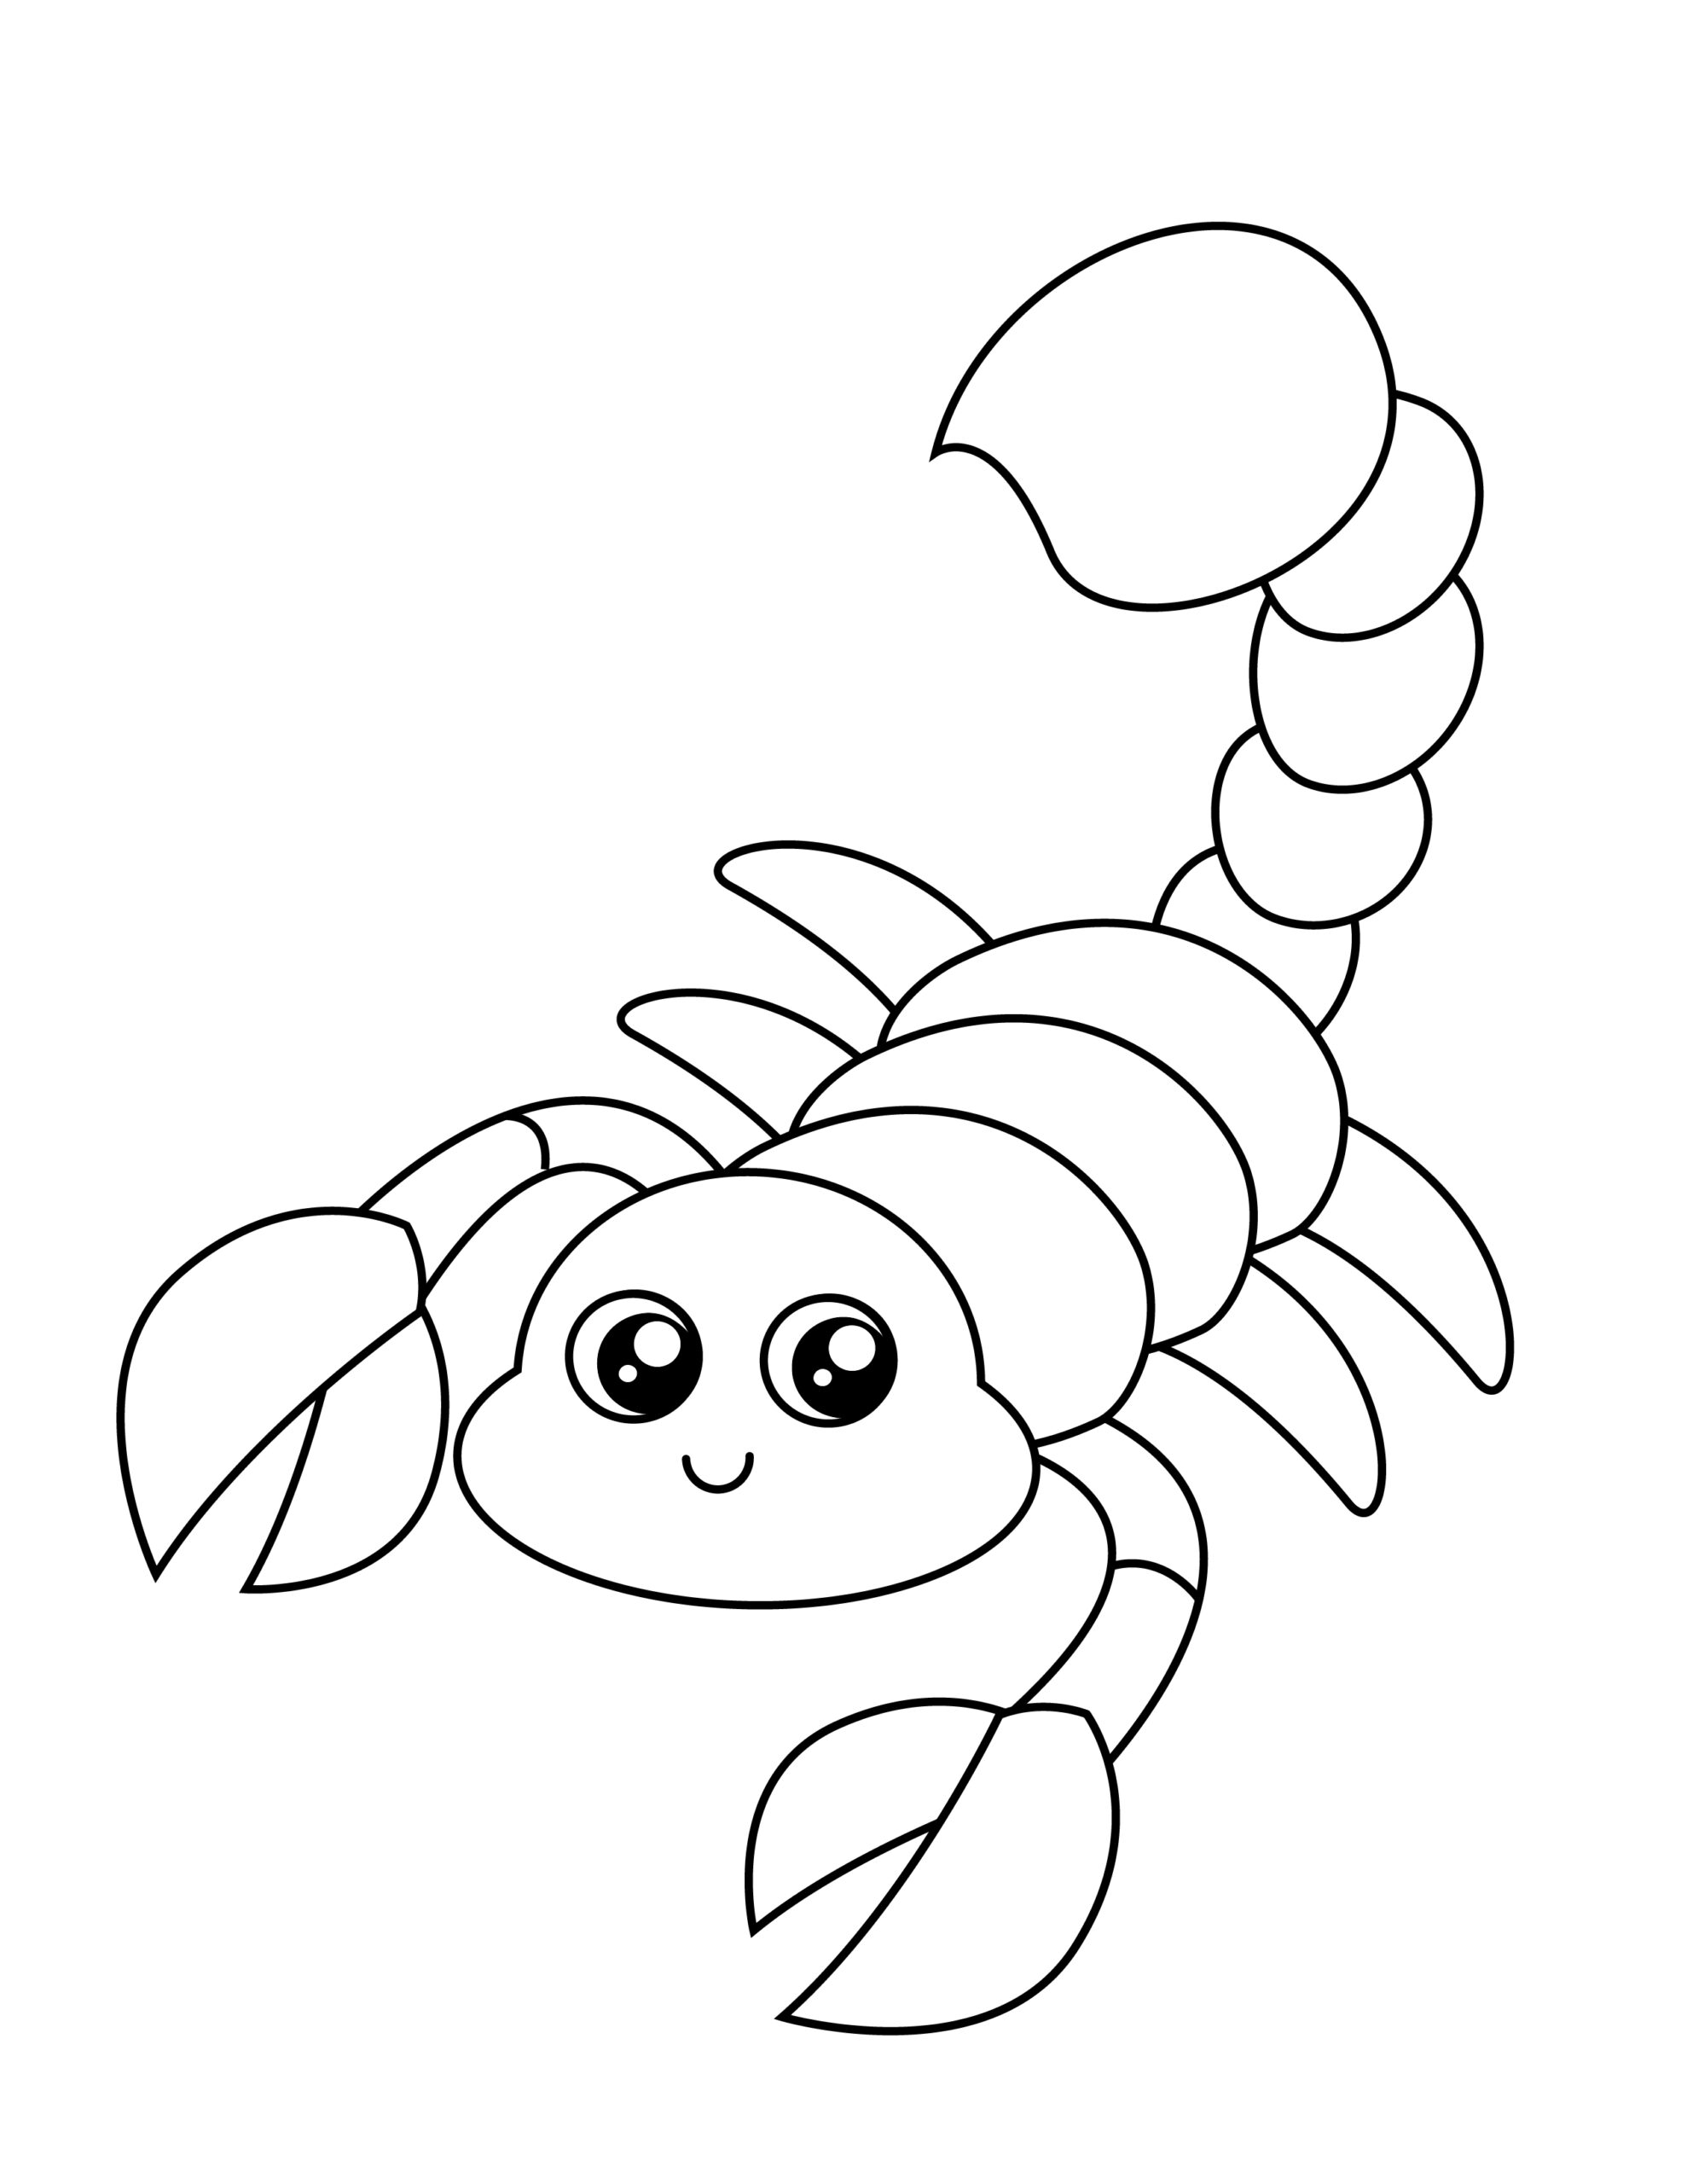 Printable scorpion template for summer template crafts for kids, preschoolers and toddlers